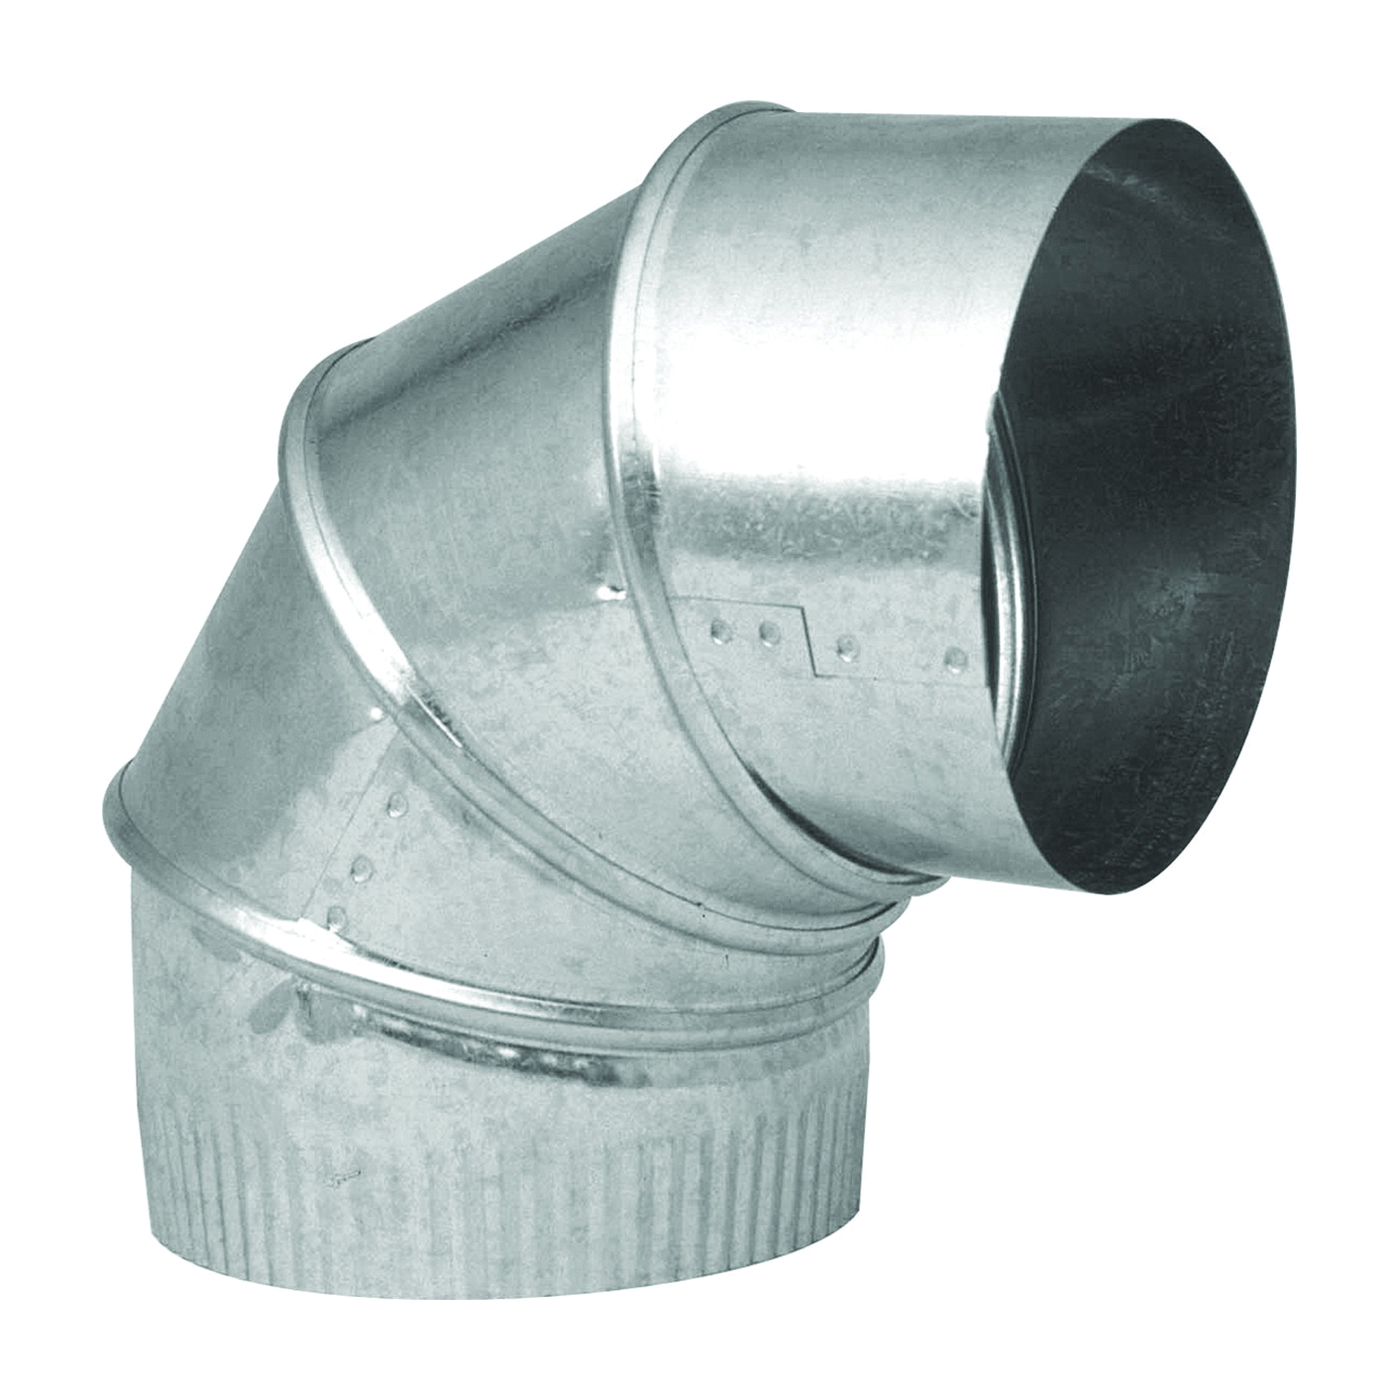 Picture of Imperial GV0301-C Stove Pipe Elbow, 8 in Connection, 24 Gauge, Galvanized